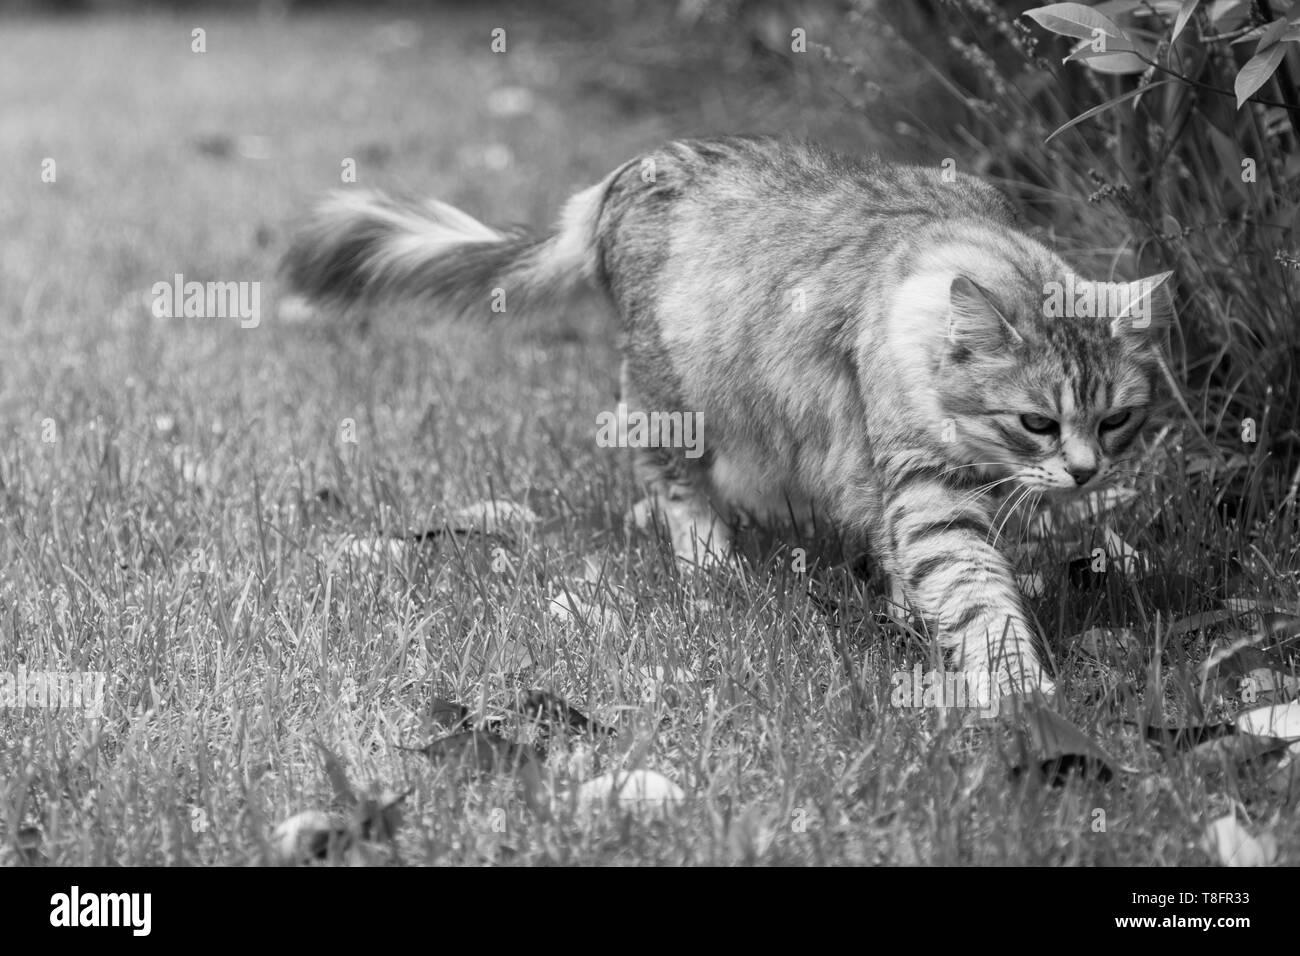 Beautiful cat with long hair outdoor in a garden, siberian silver kitten - Stock Image